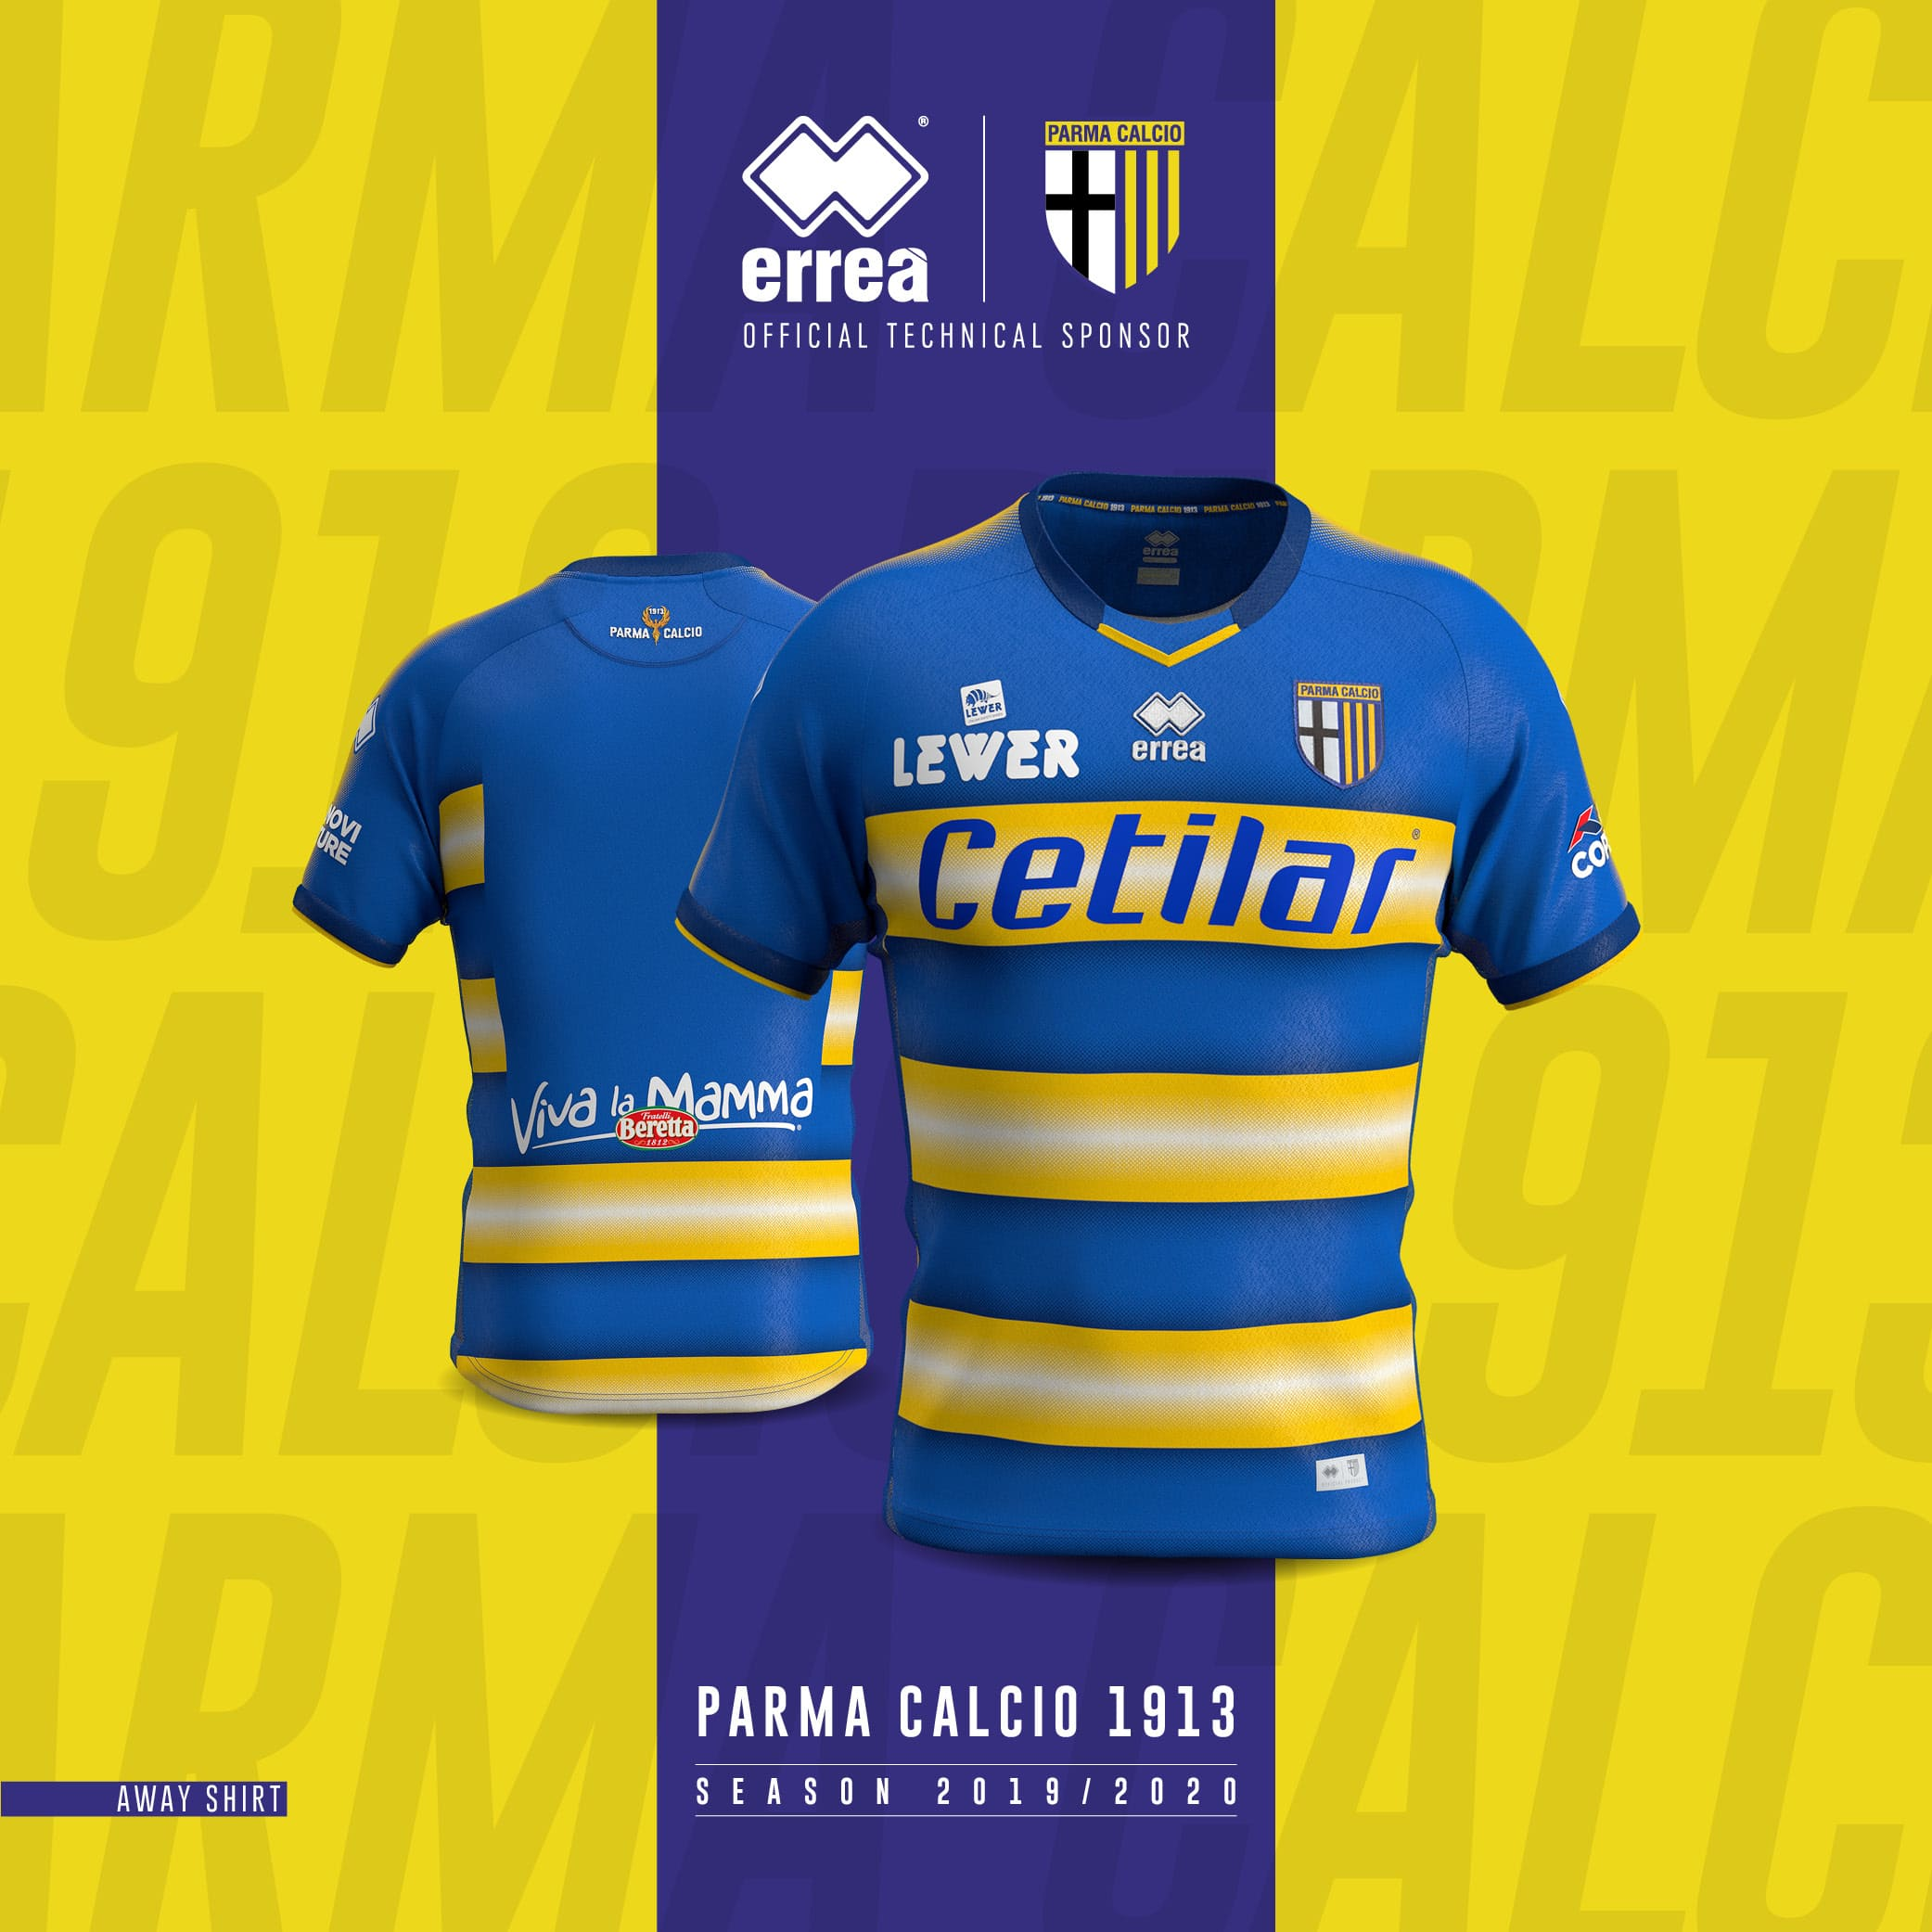 competitive price 6a42b 05fc5 The 2019/20 away shirt for Parma Calcio 1913 is unveiled!